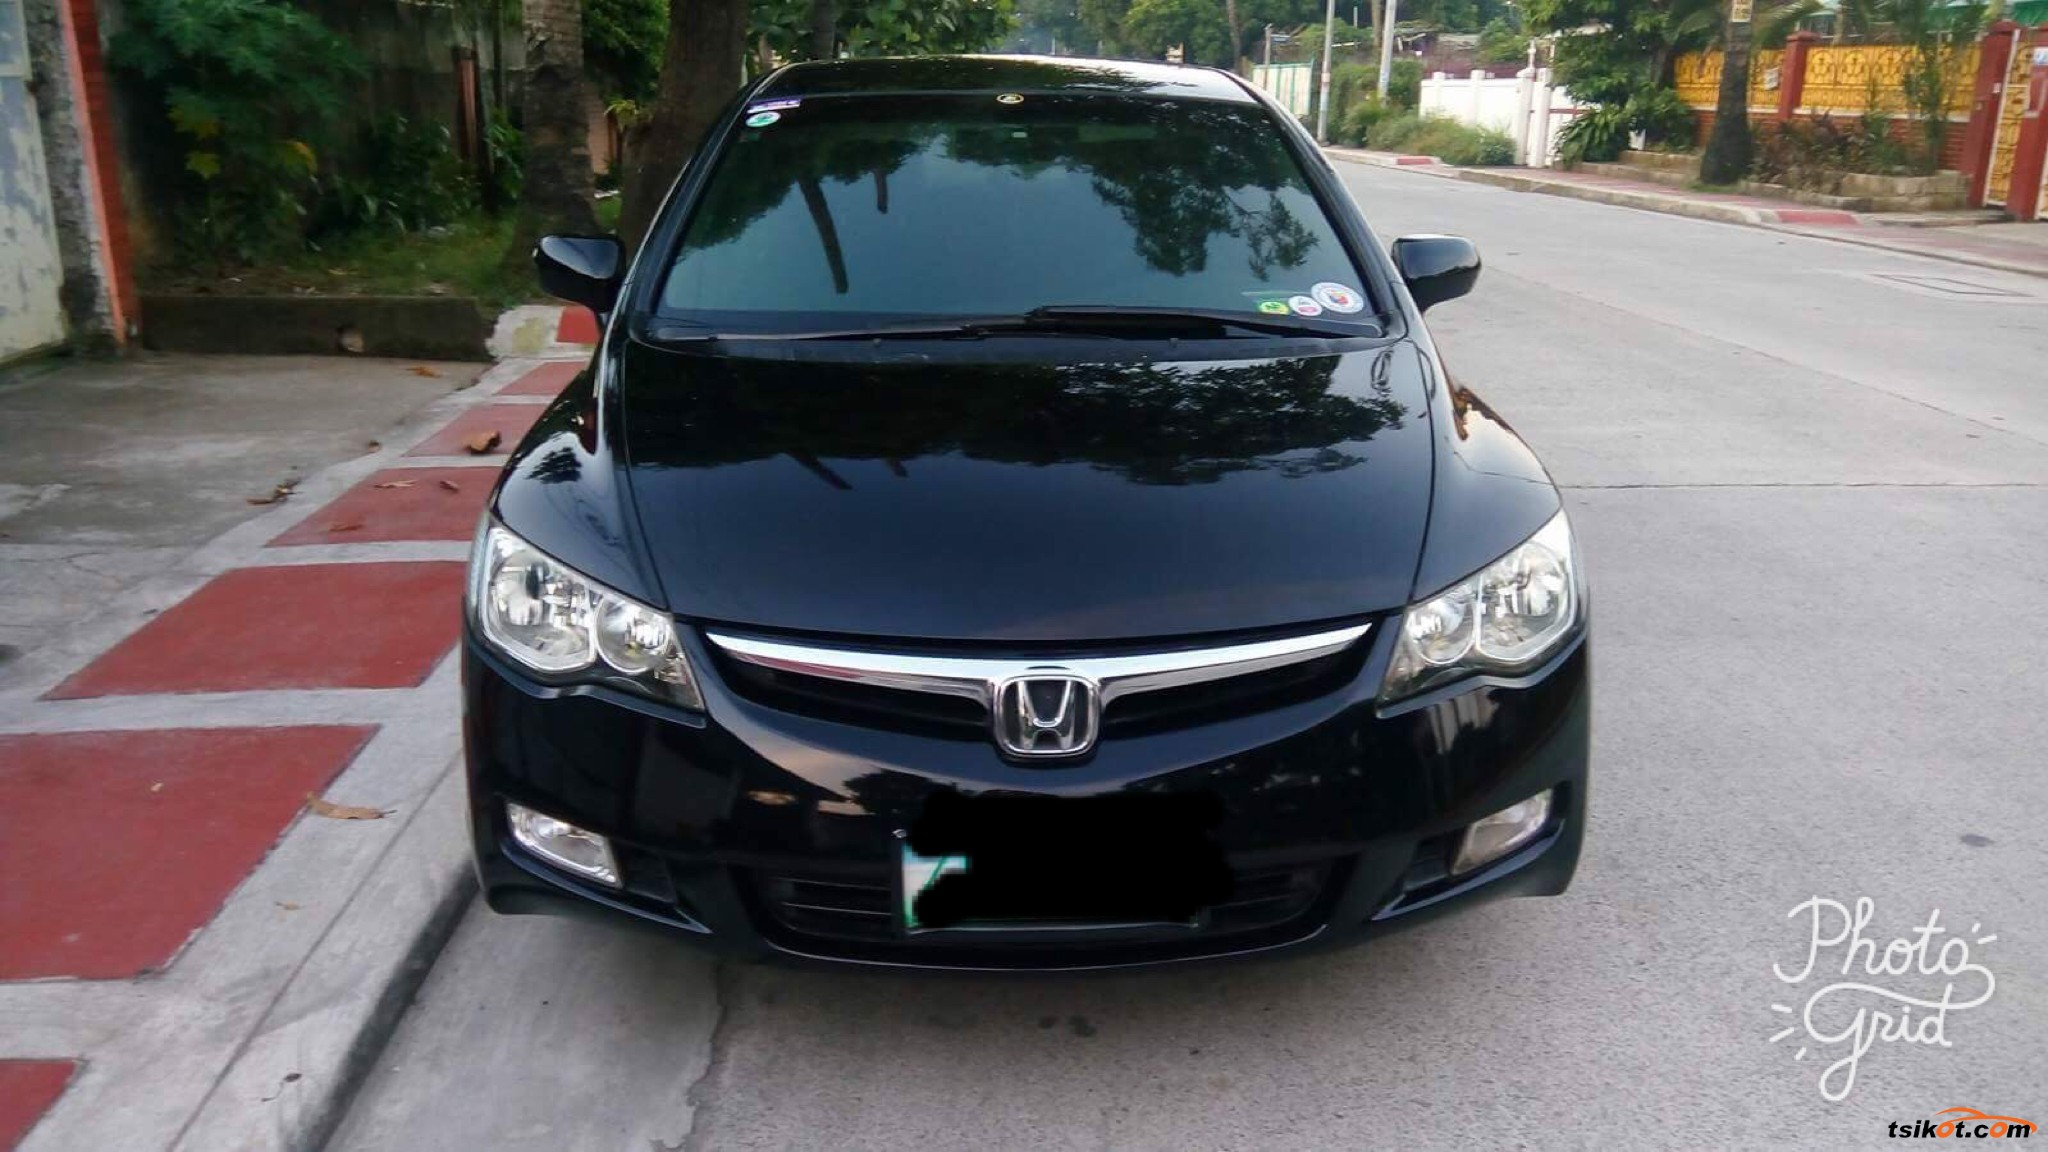 Honda Civic 2006 - 4